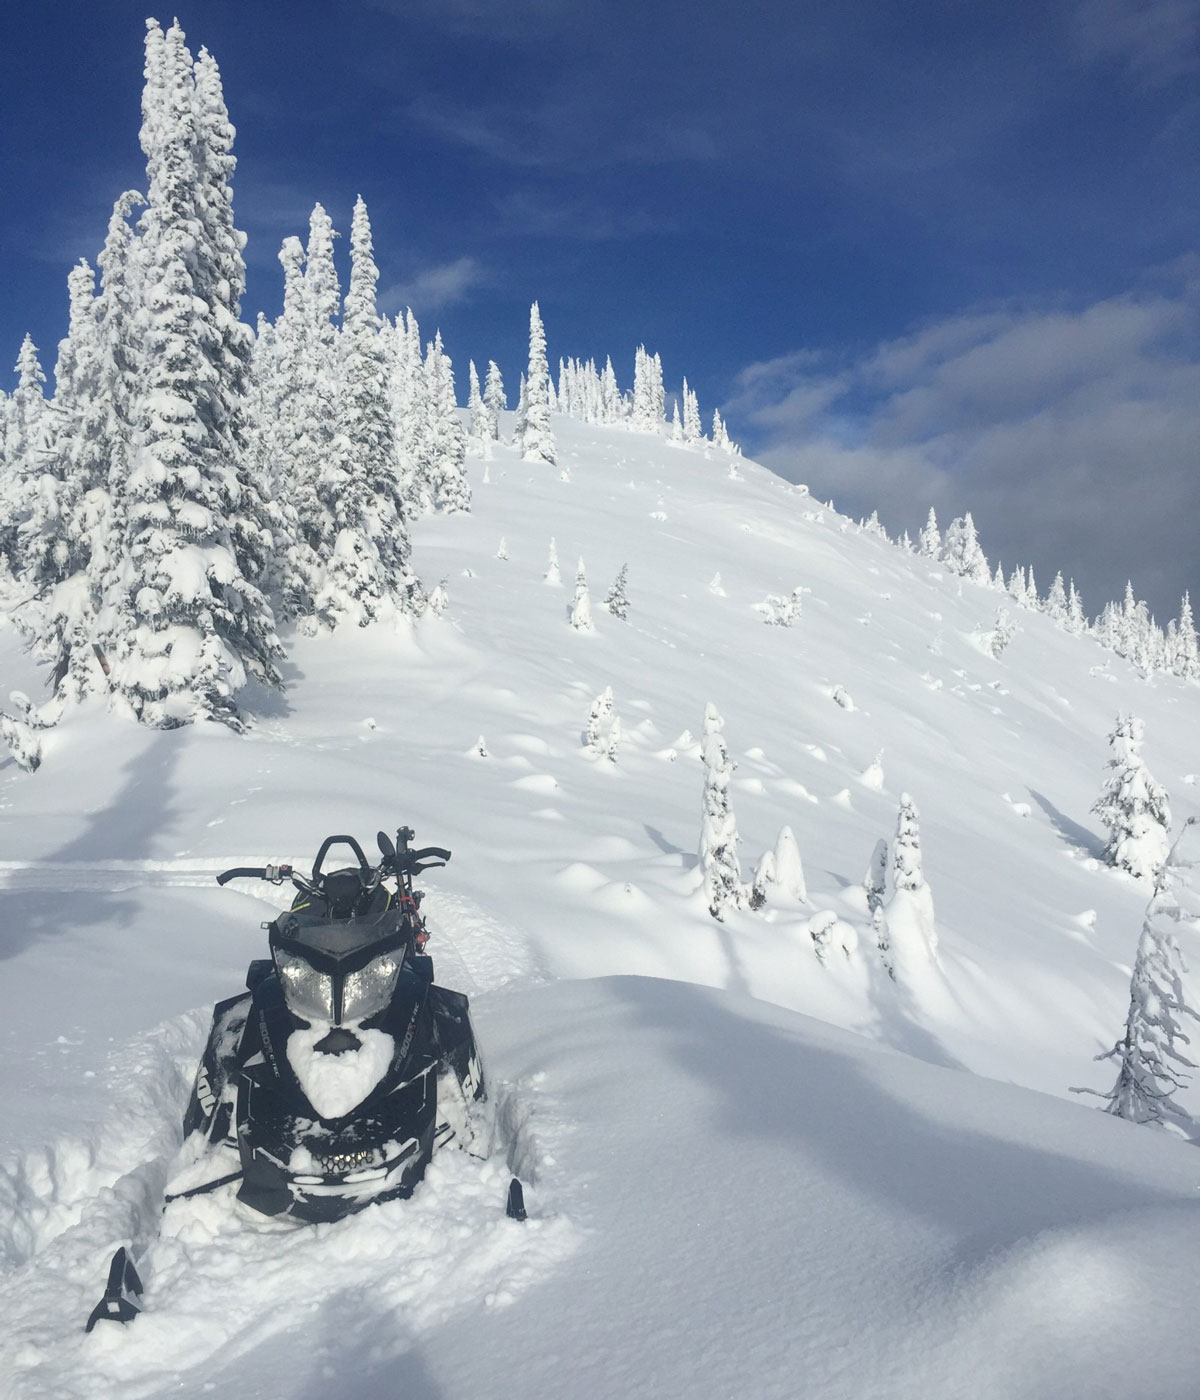 The second big storm of the season brought 33cm of fresh snow to the Kootenays